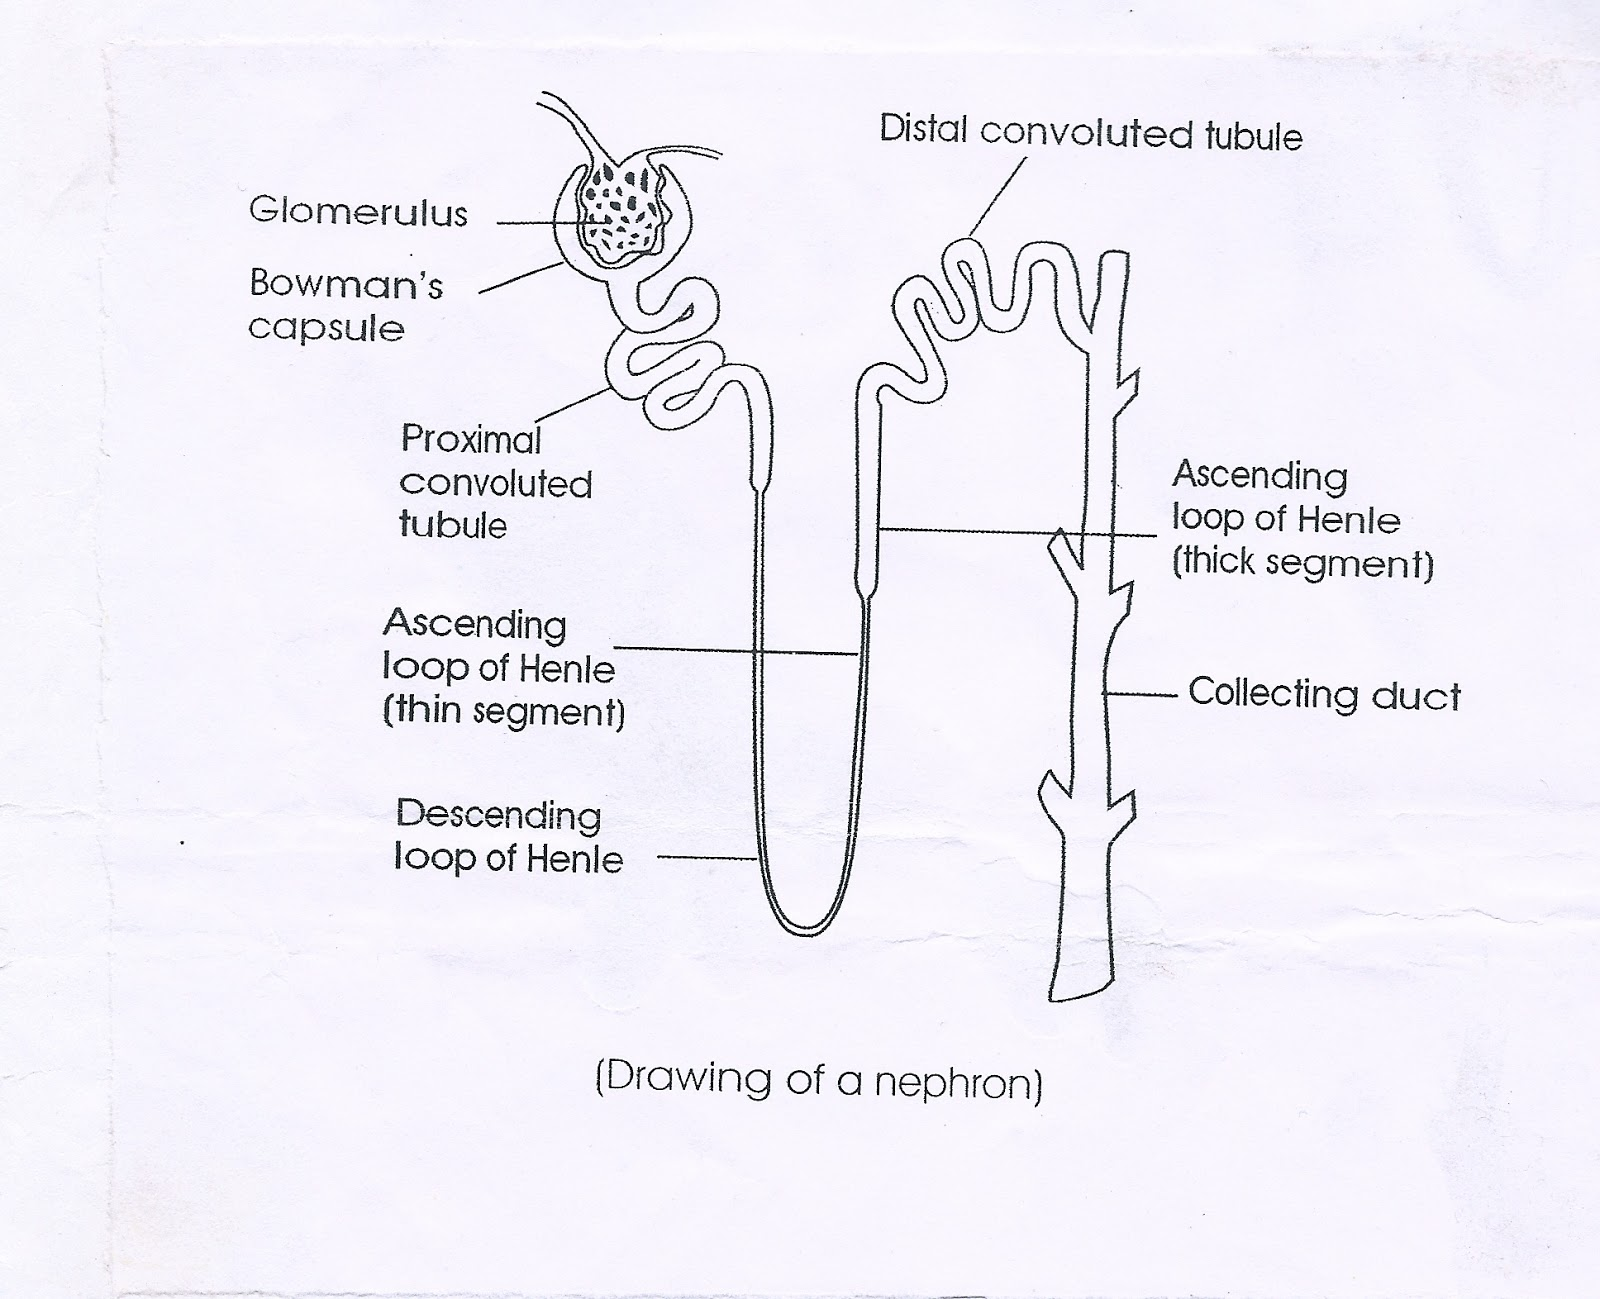 Urinary System Diagram Without Labels Db9 Connector Wiring Diagrams To Label Earth 39s Layers